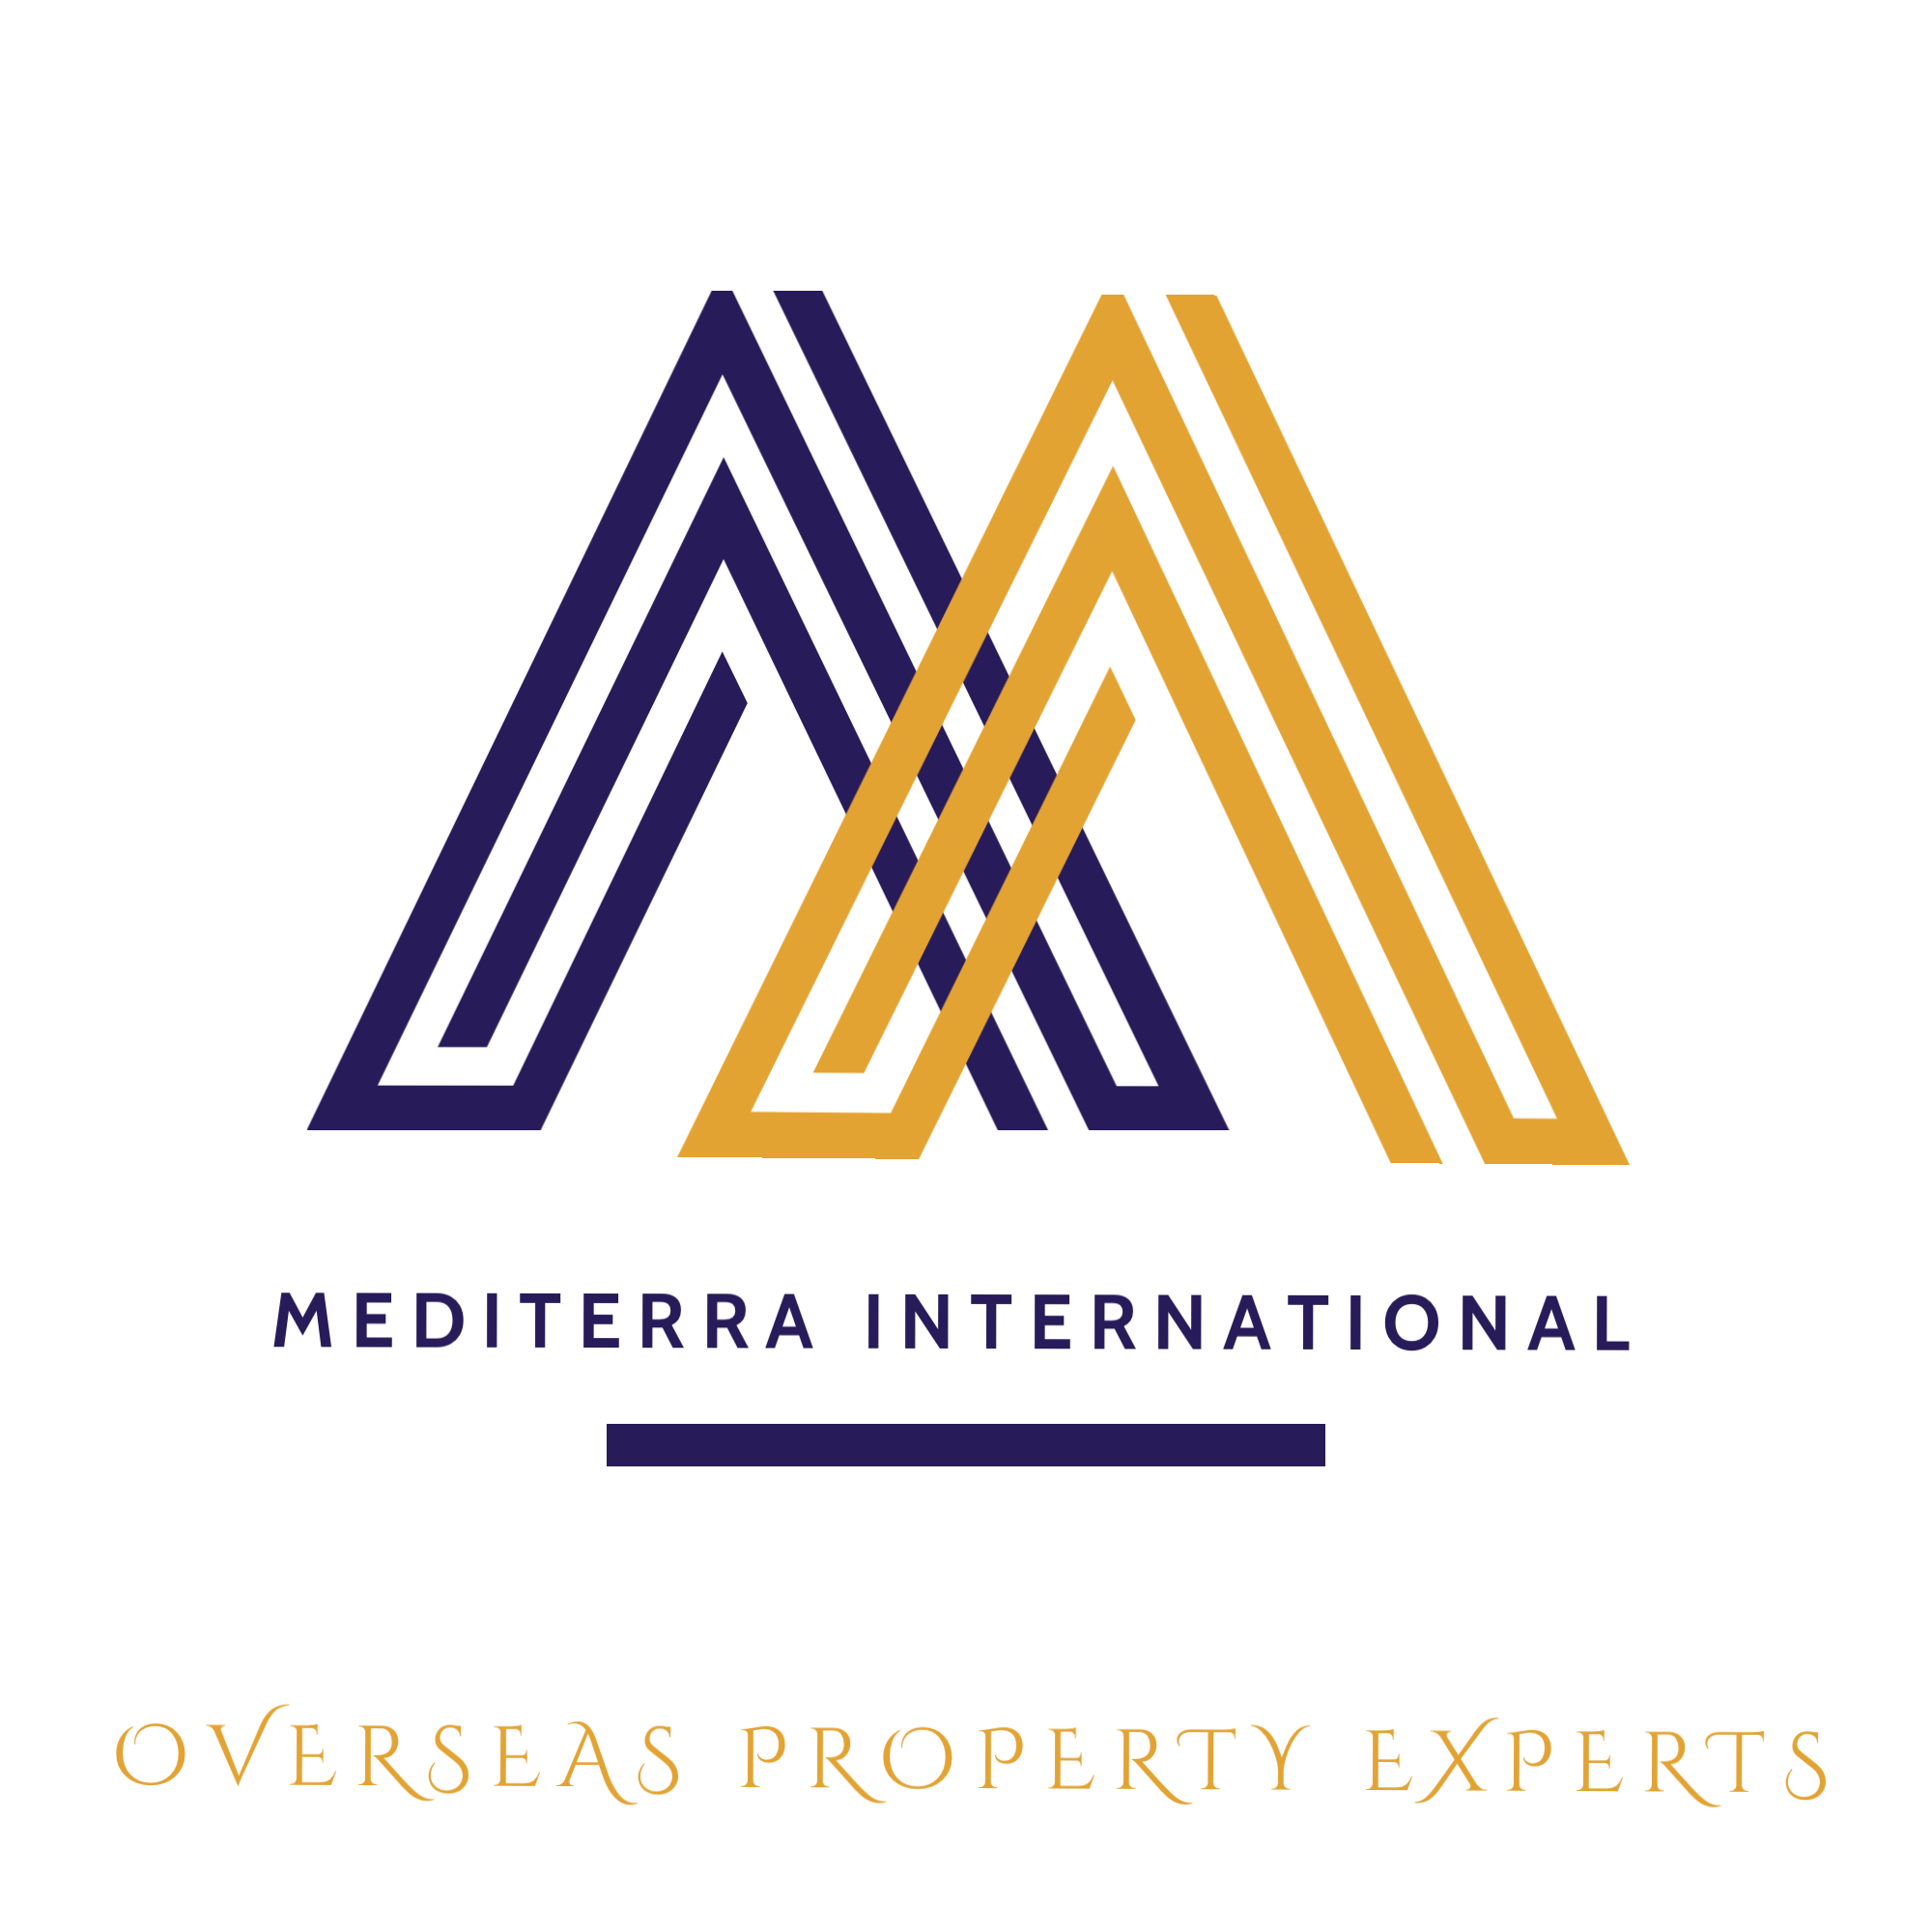 Calabria property with Mediterra International - overseas property experts